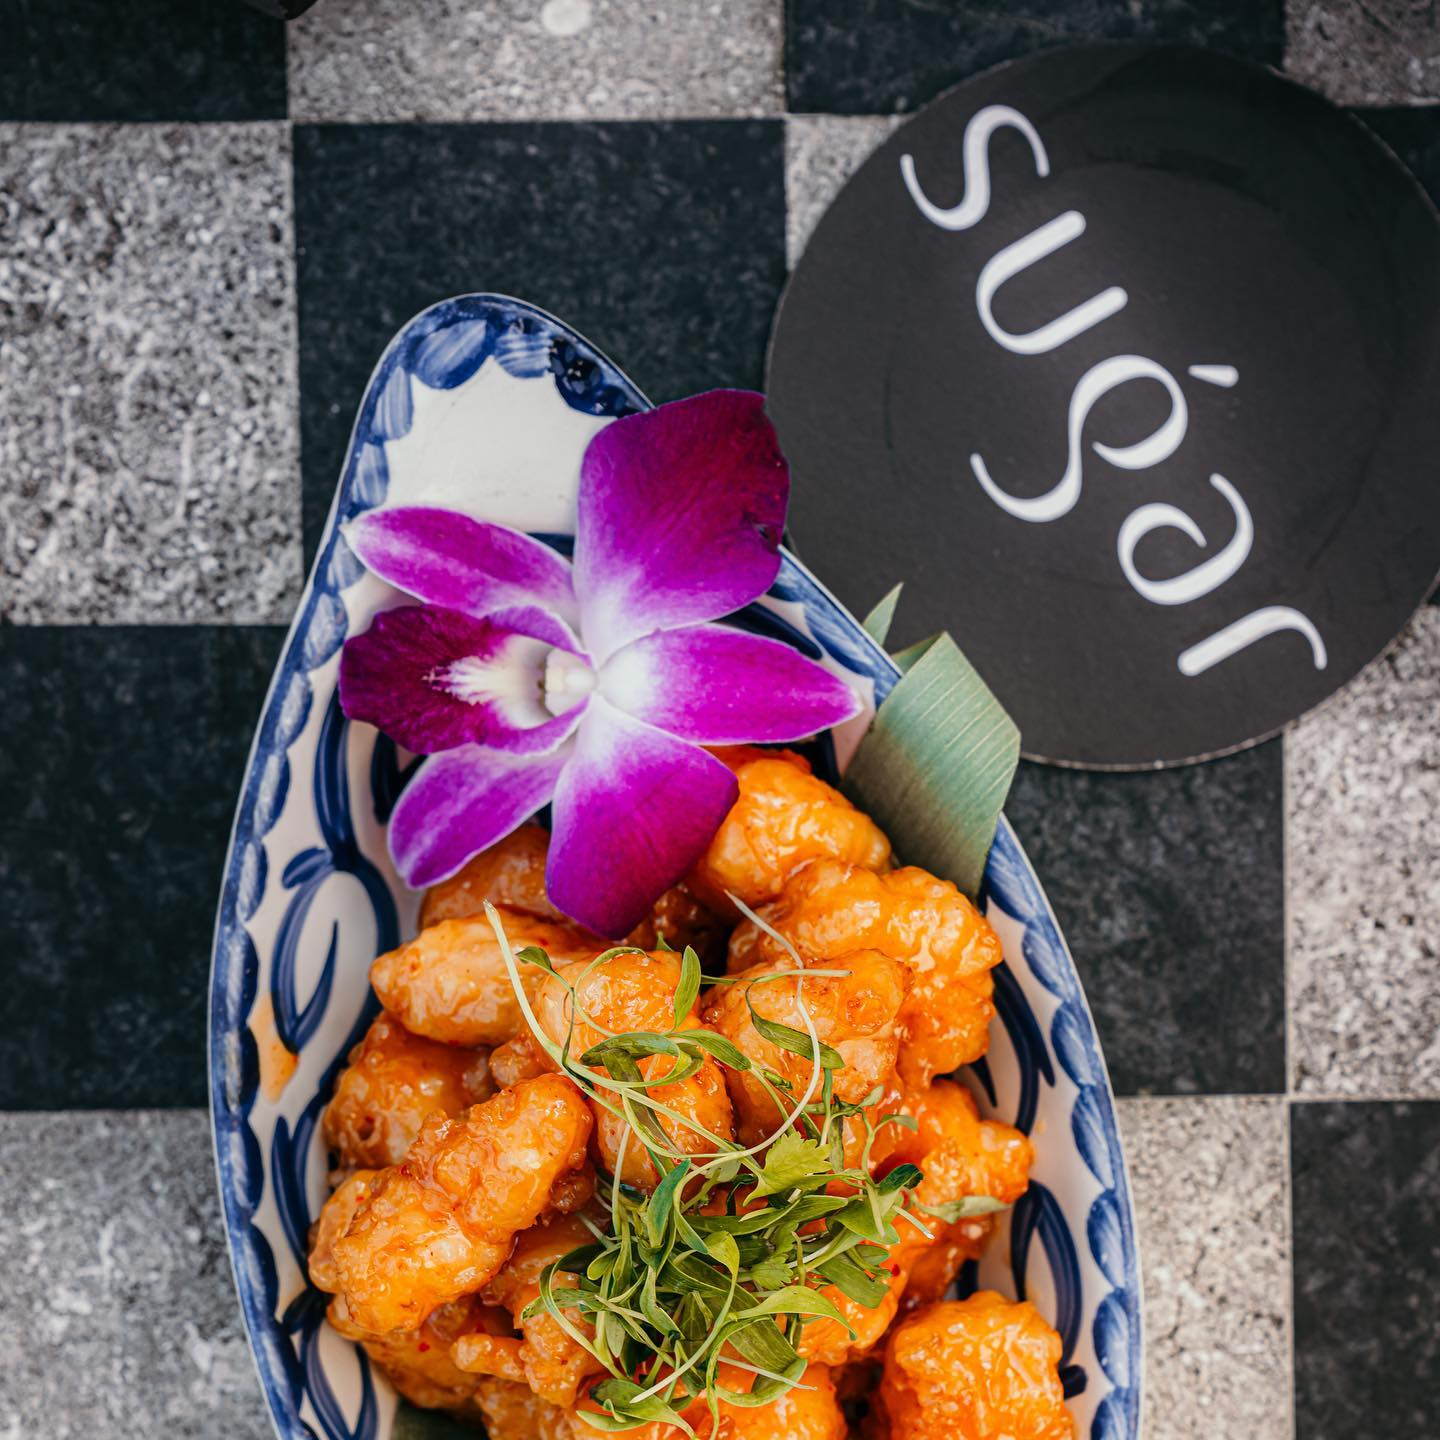 These delicious Asian-inspired tapas we serve at our rooftop bar Sugar will take your taste buds to another level.  